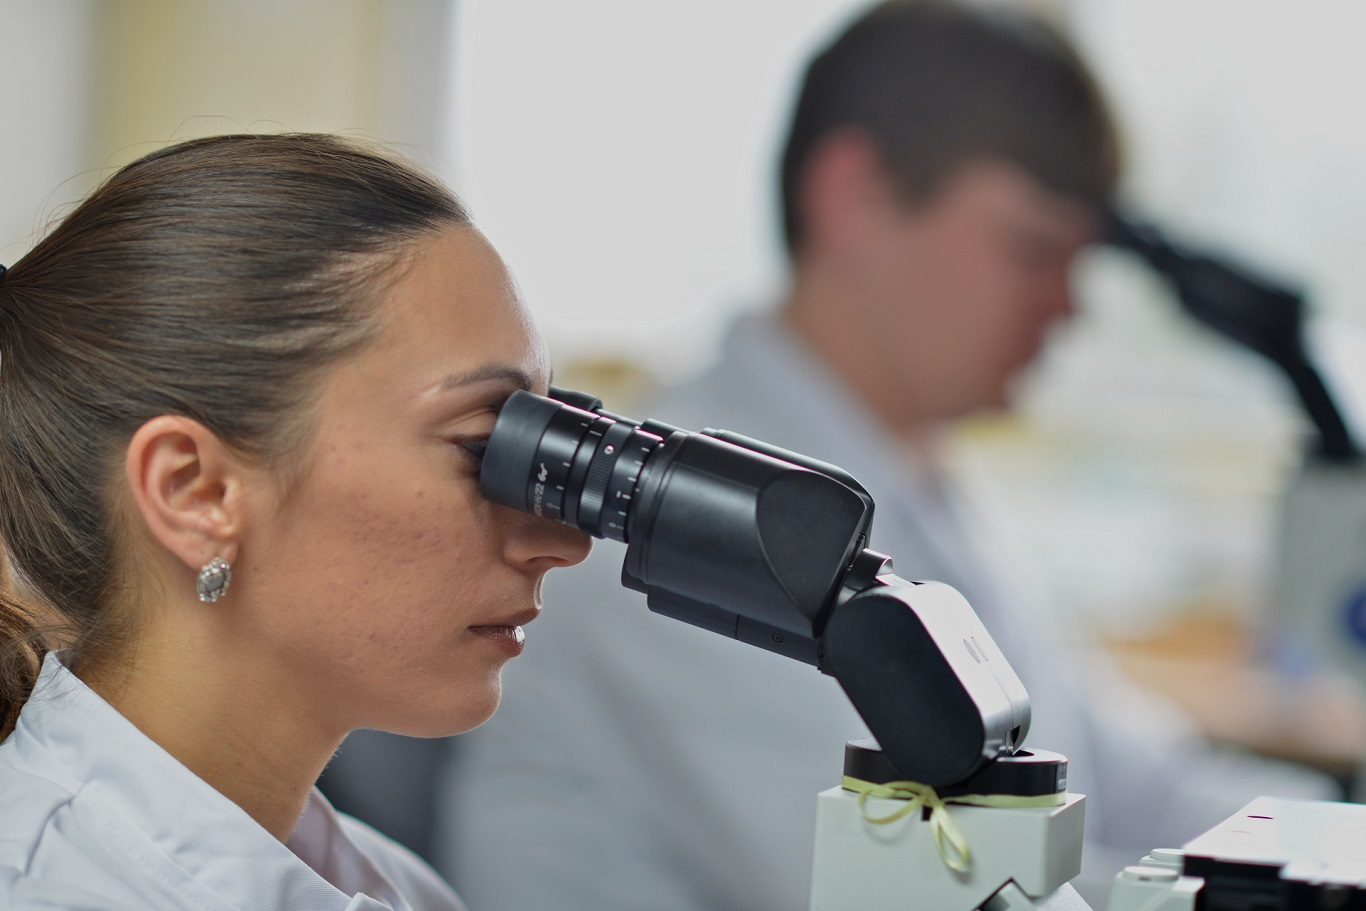 a group of people in lab coats looking at a scientific experiment in beakers